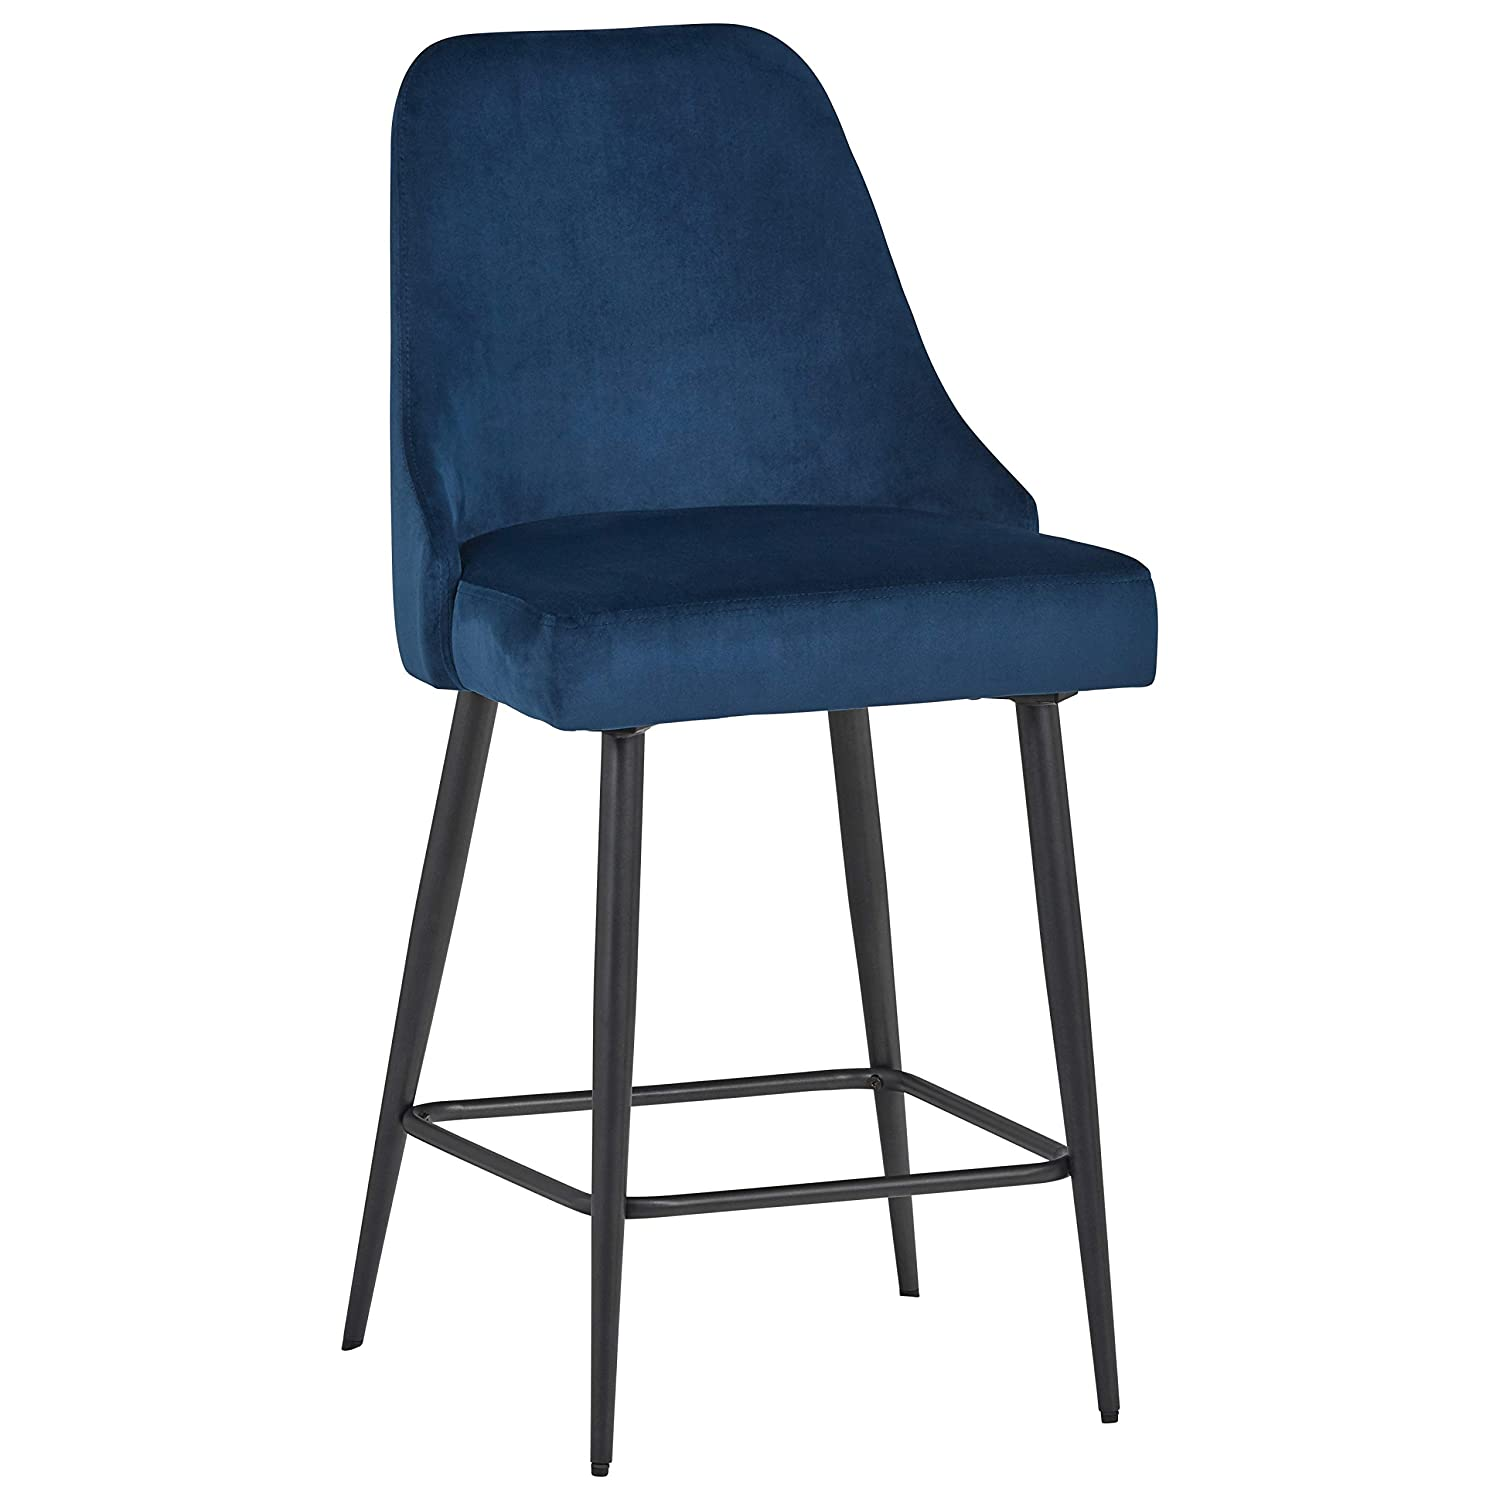 Rivet Modern Dining Chairs, Set of 2, 39.5 H, Blue